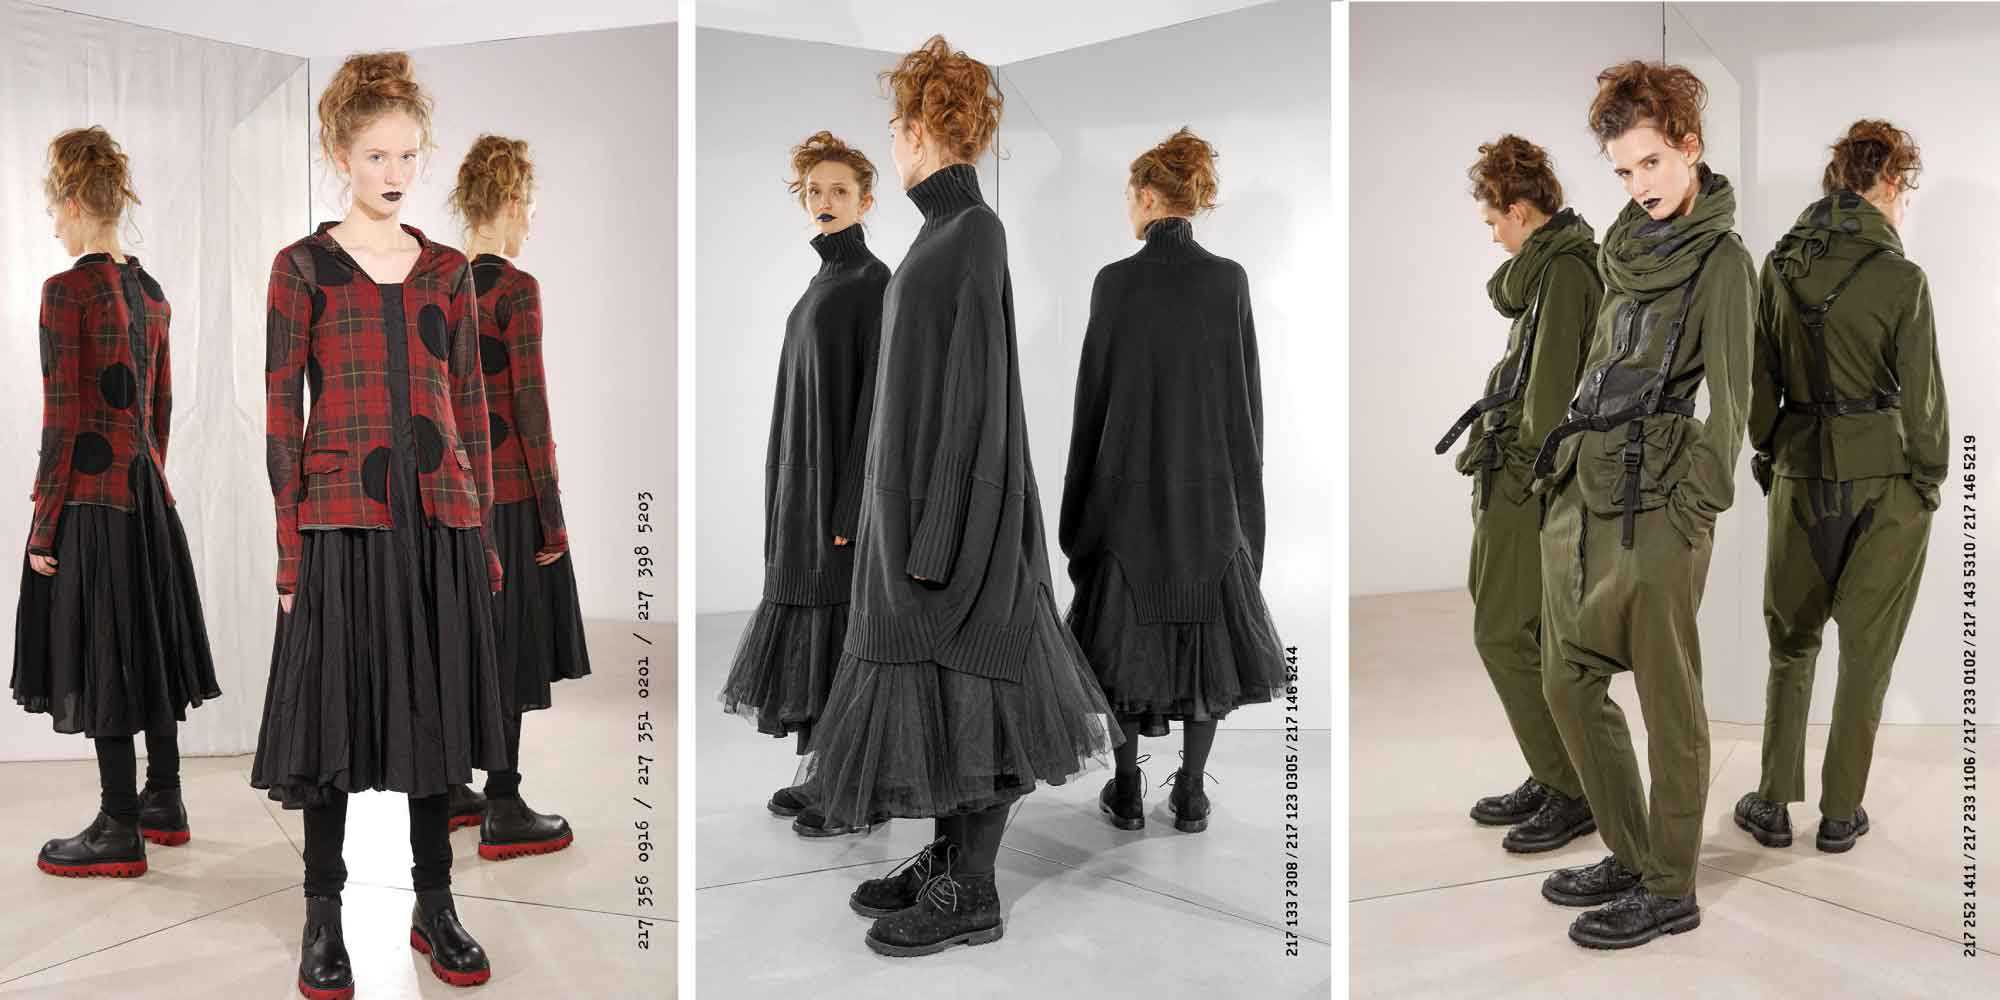 @ Walkers.Style online women's fashion and clothing shop - Rundholz Autumn/Winter 2017 collection now in stock. New deliveries arriving daily.